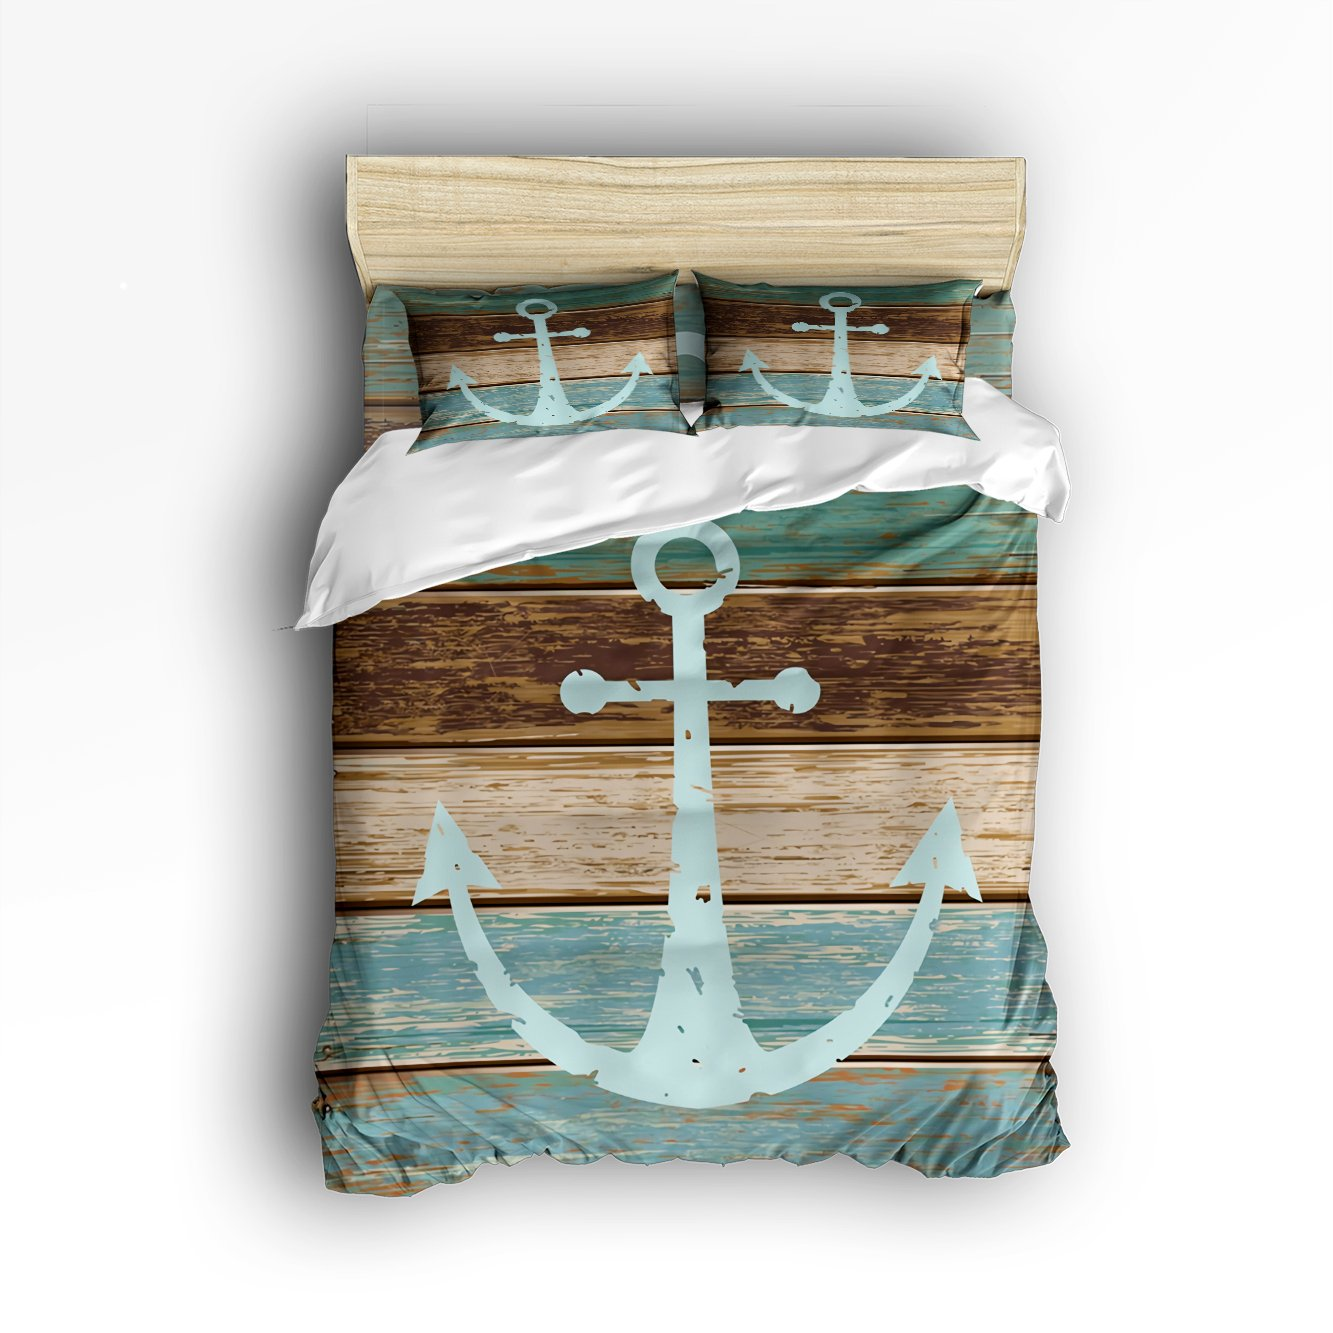 4 Pieces Home Comforter Bedding Set, Nautical Anchor Rustic Wood Digital Printing Queen Size